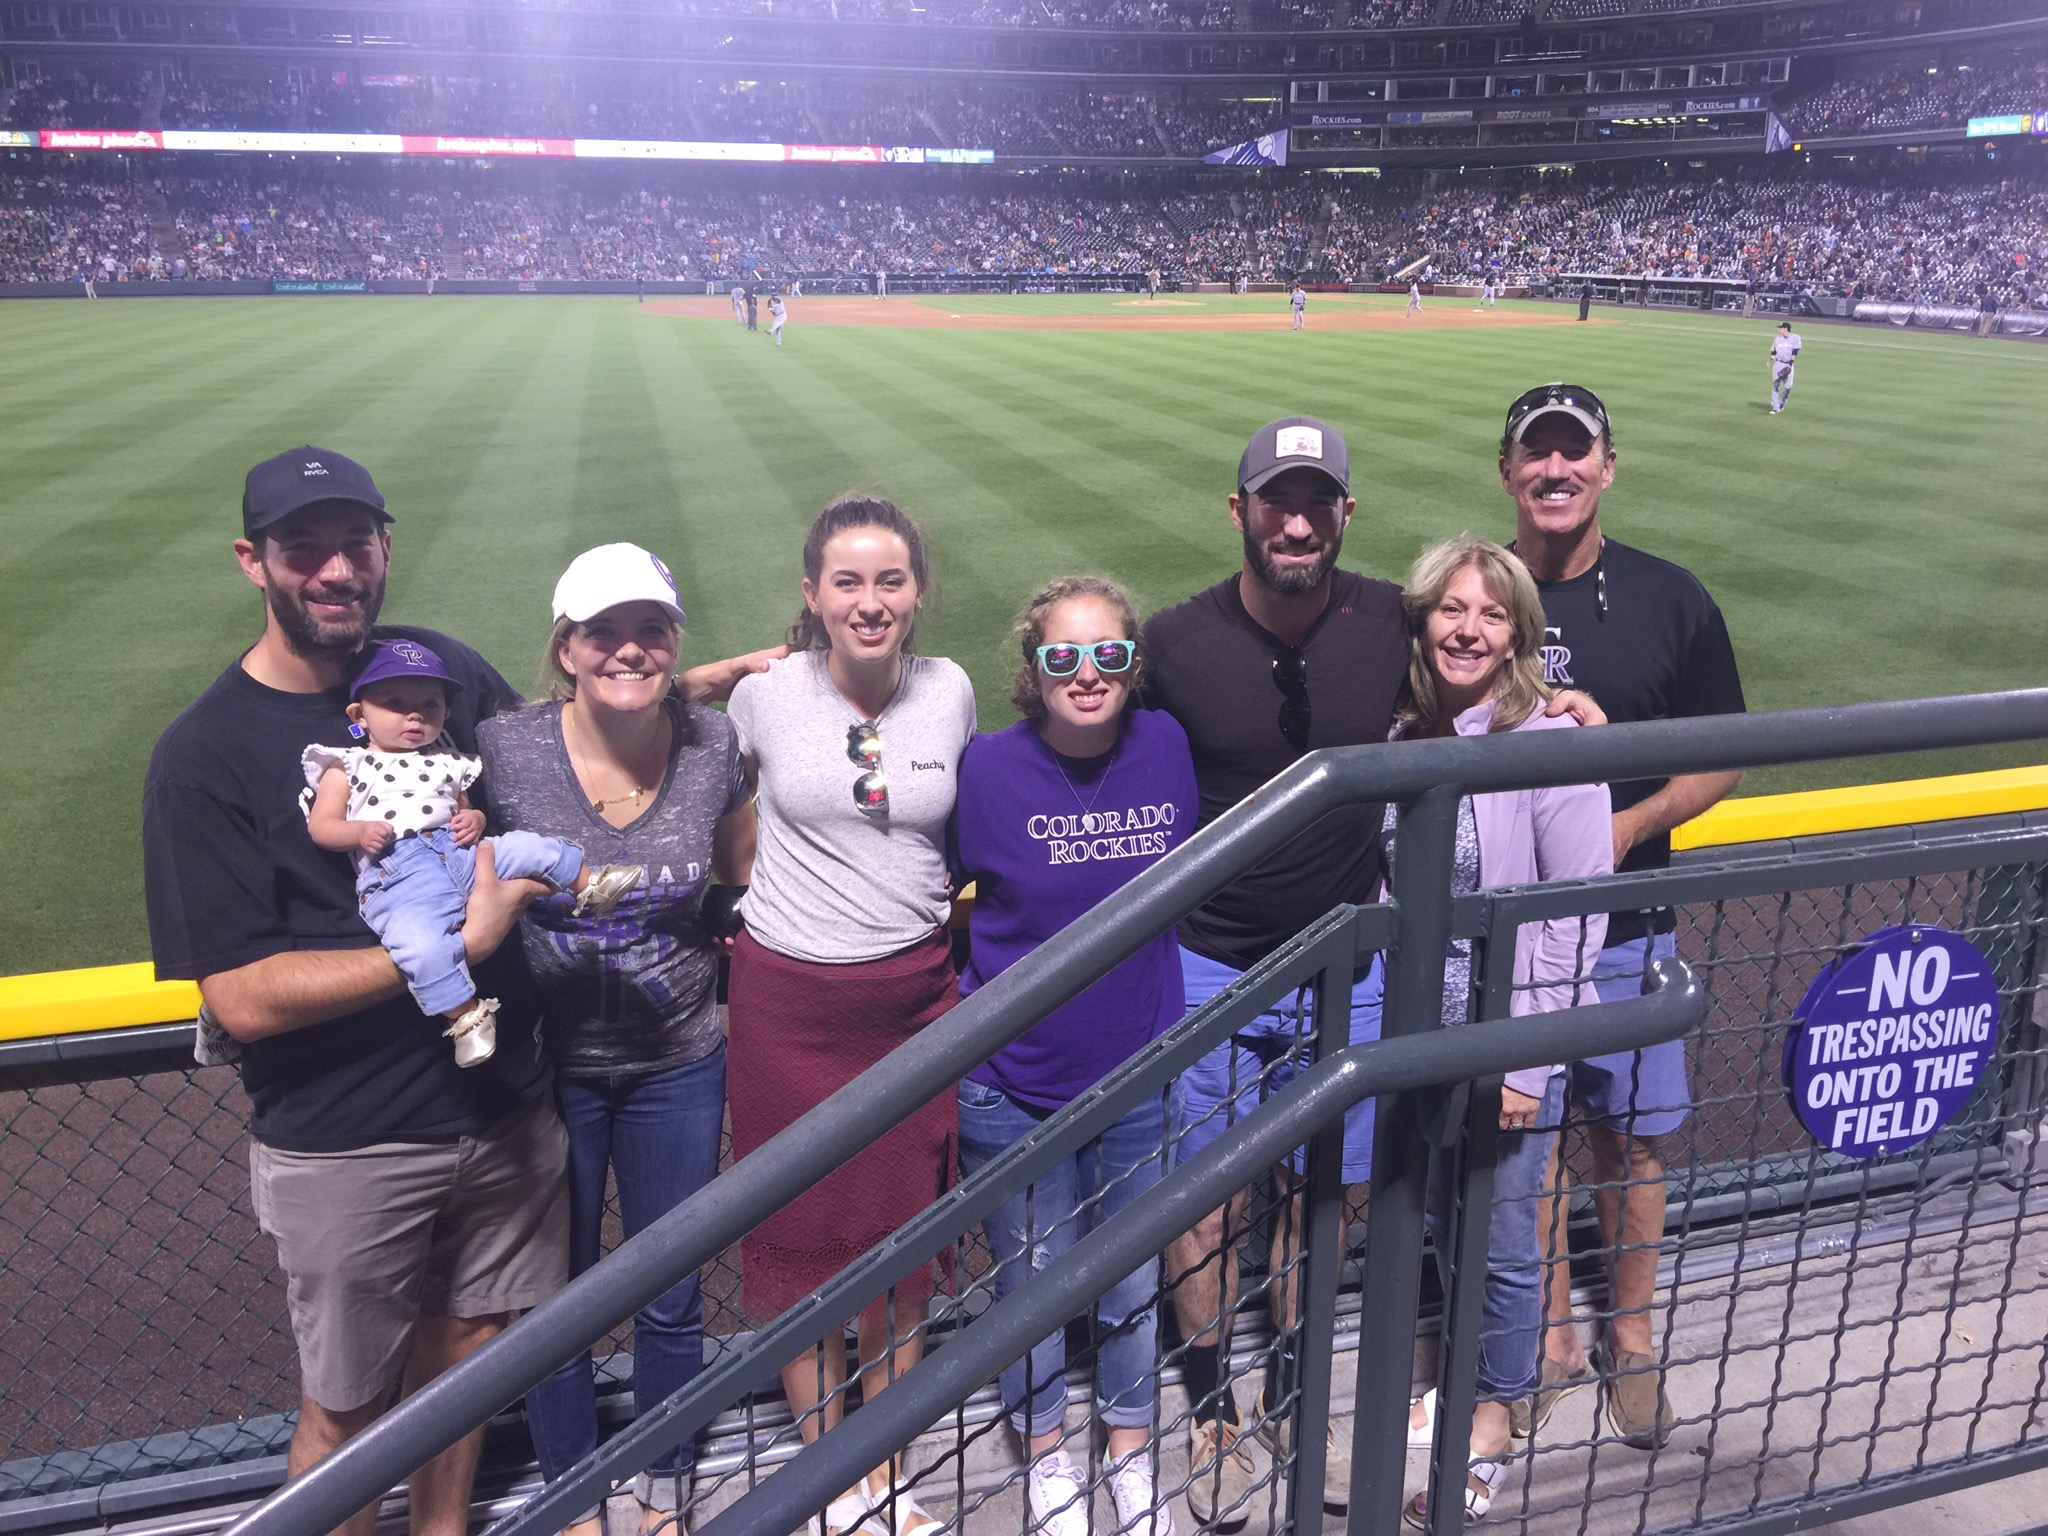 Weisiger family at Colorado Rockies game.